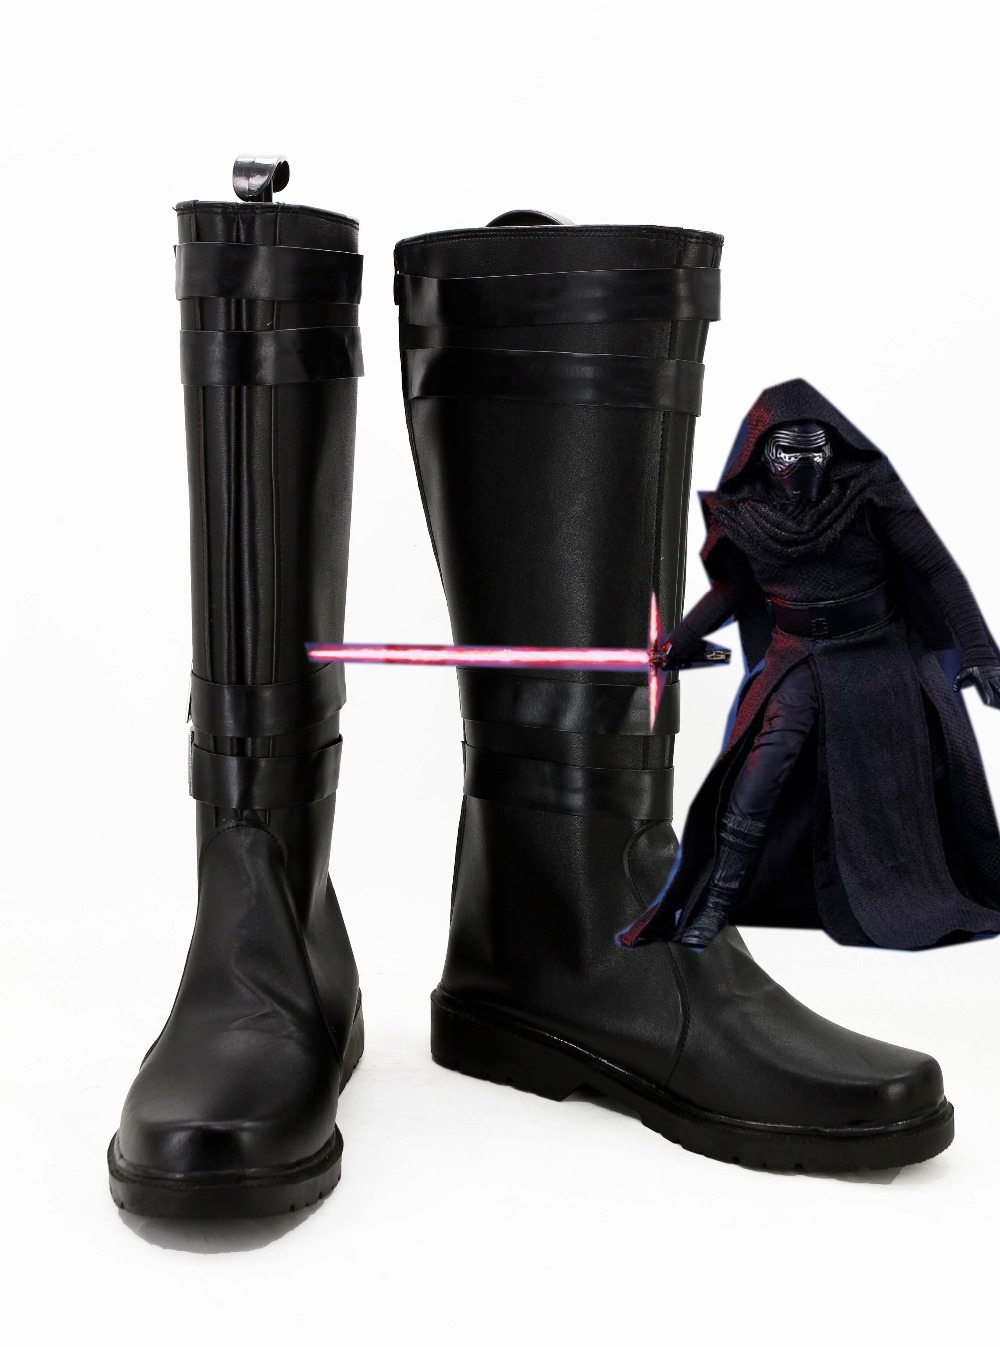 New Star Wars The Force Awakens Kylo Ren Boots Cosplay Shoes Custom Made For Adult Men